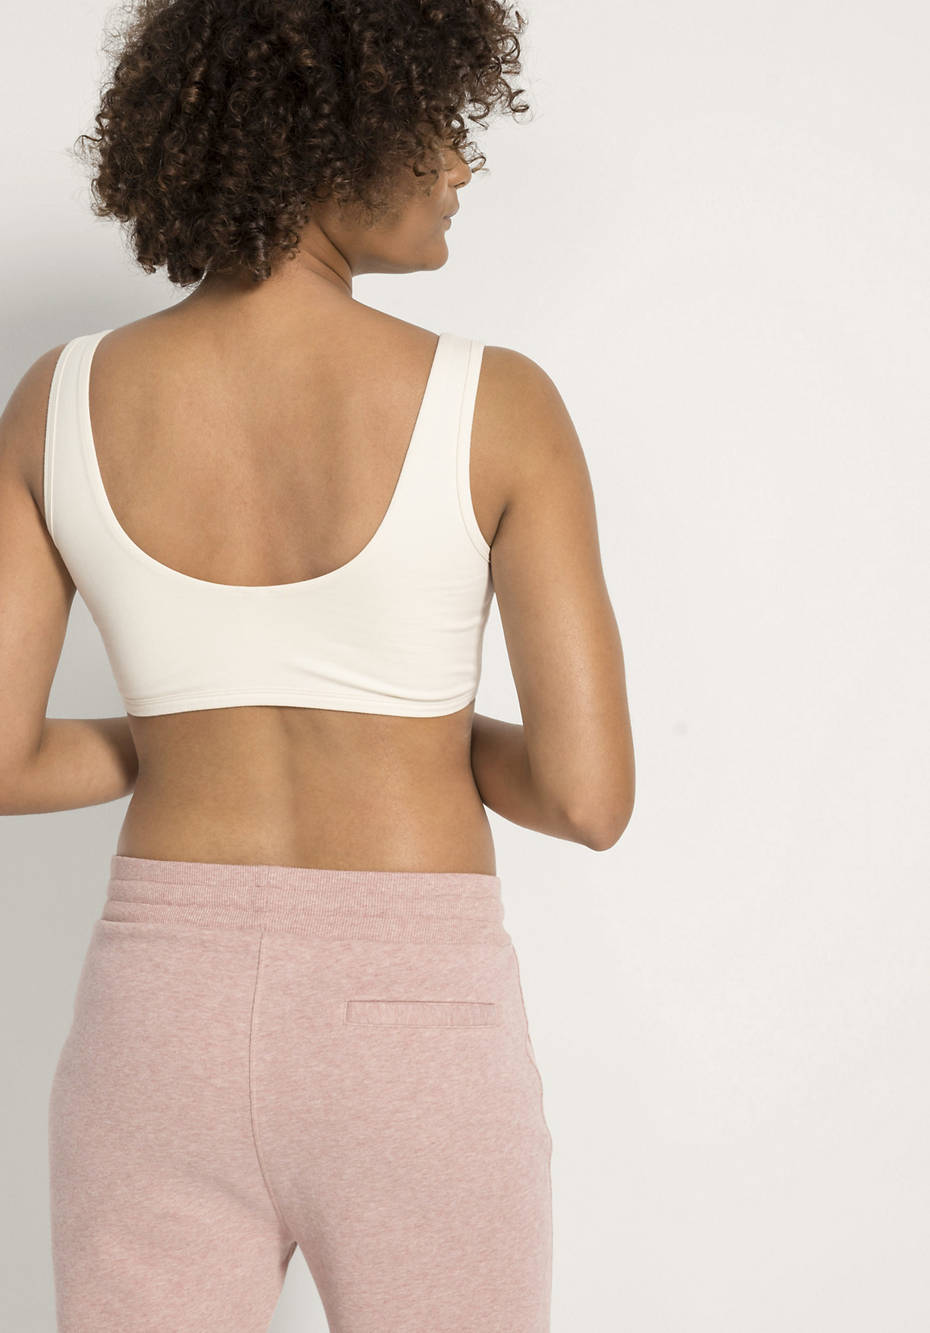 Soft bustier made of organic cotton